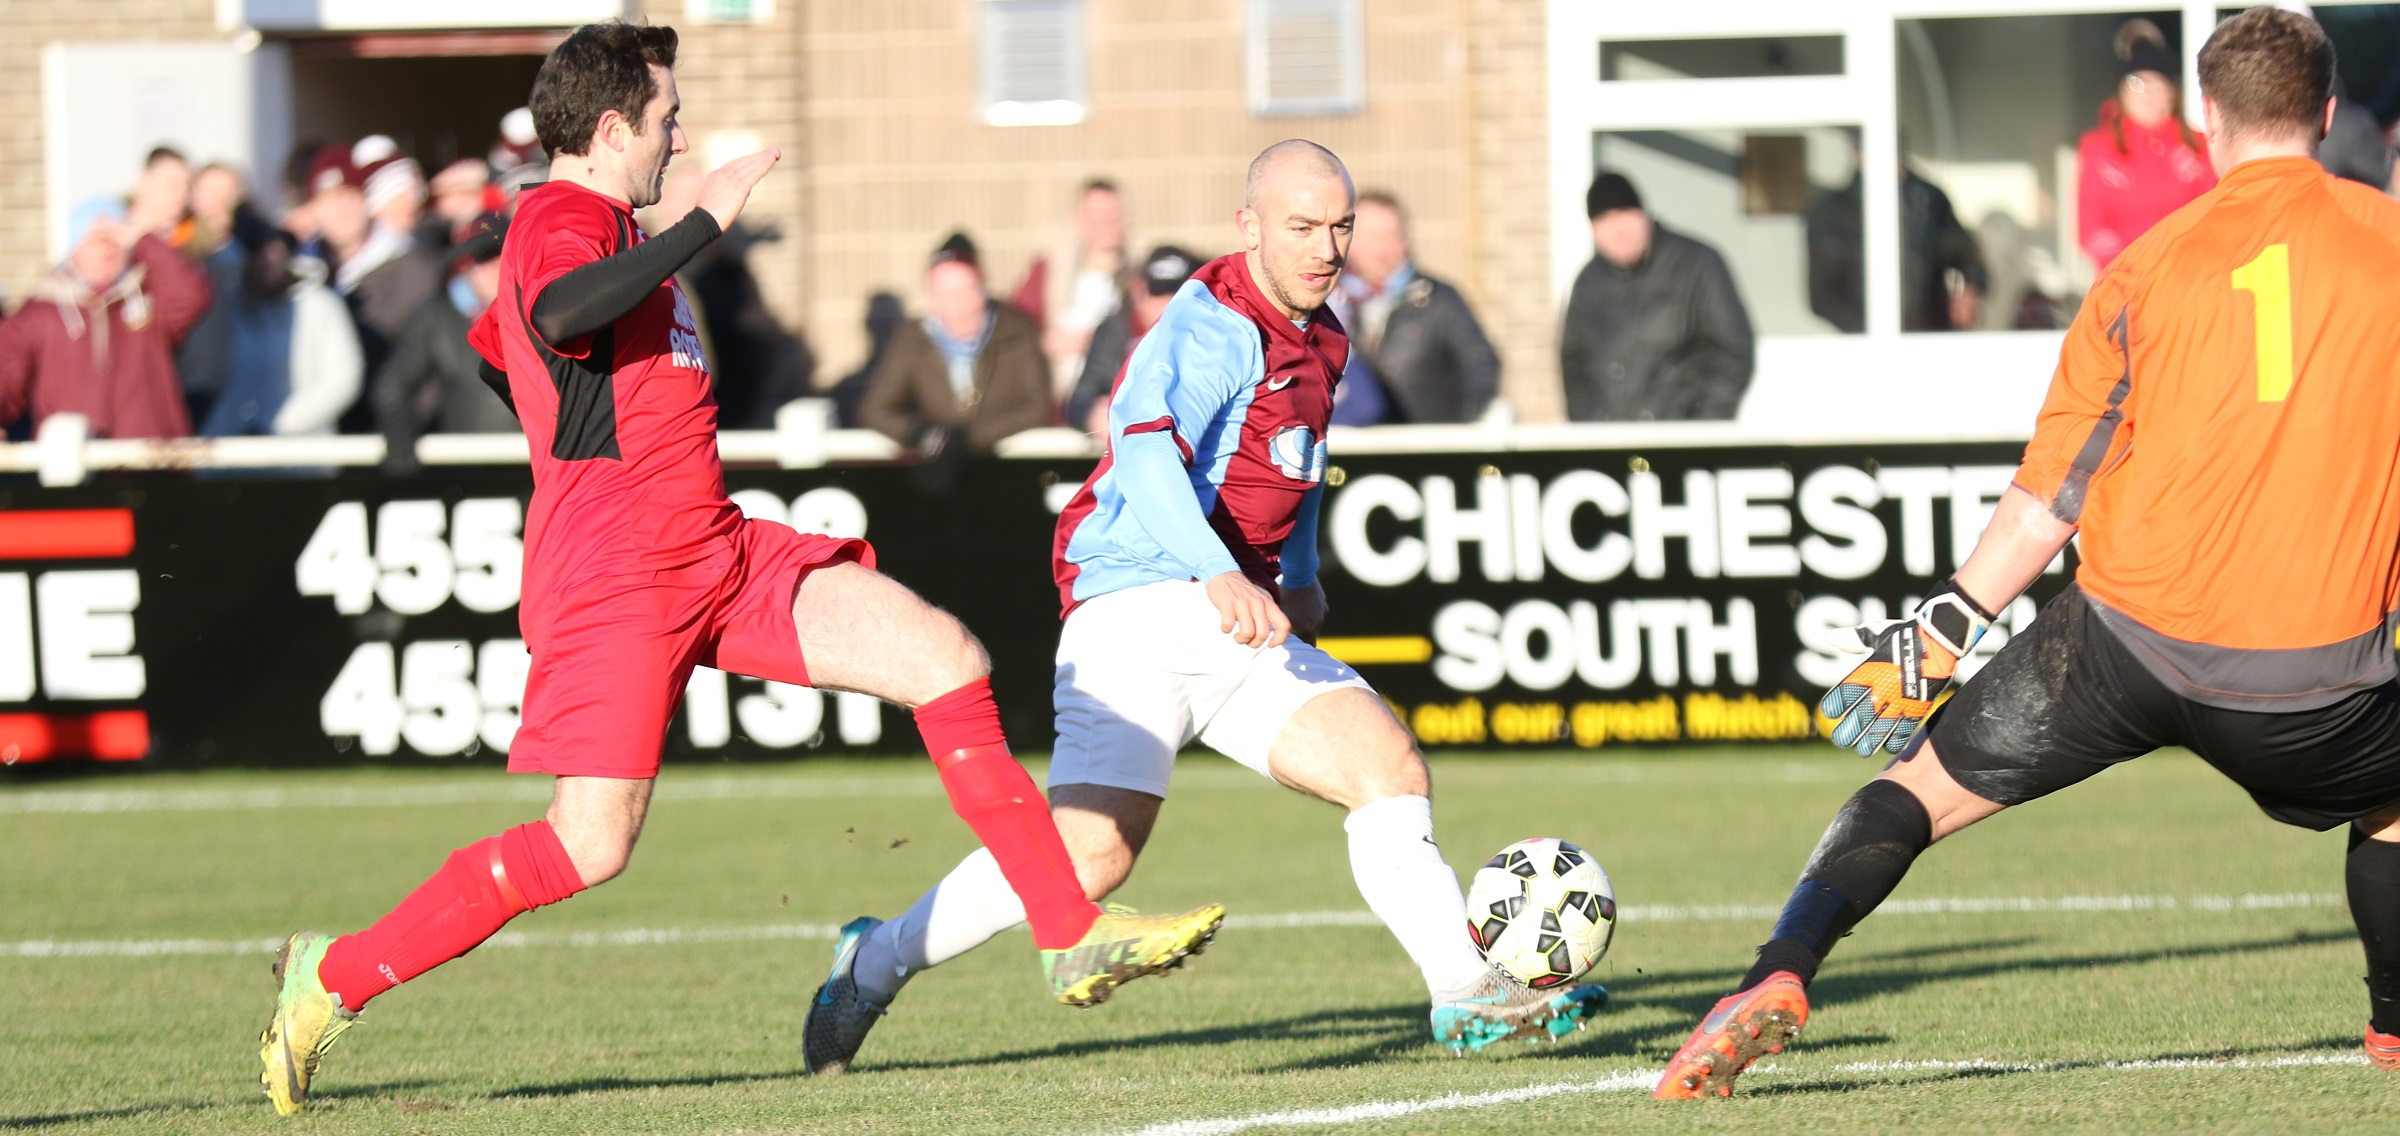 South Shields vs Jarrow Roofing